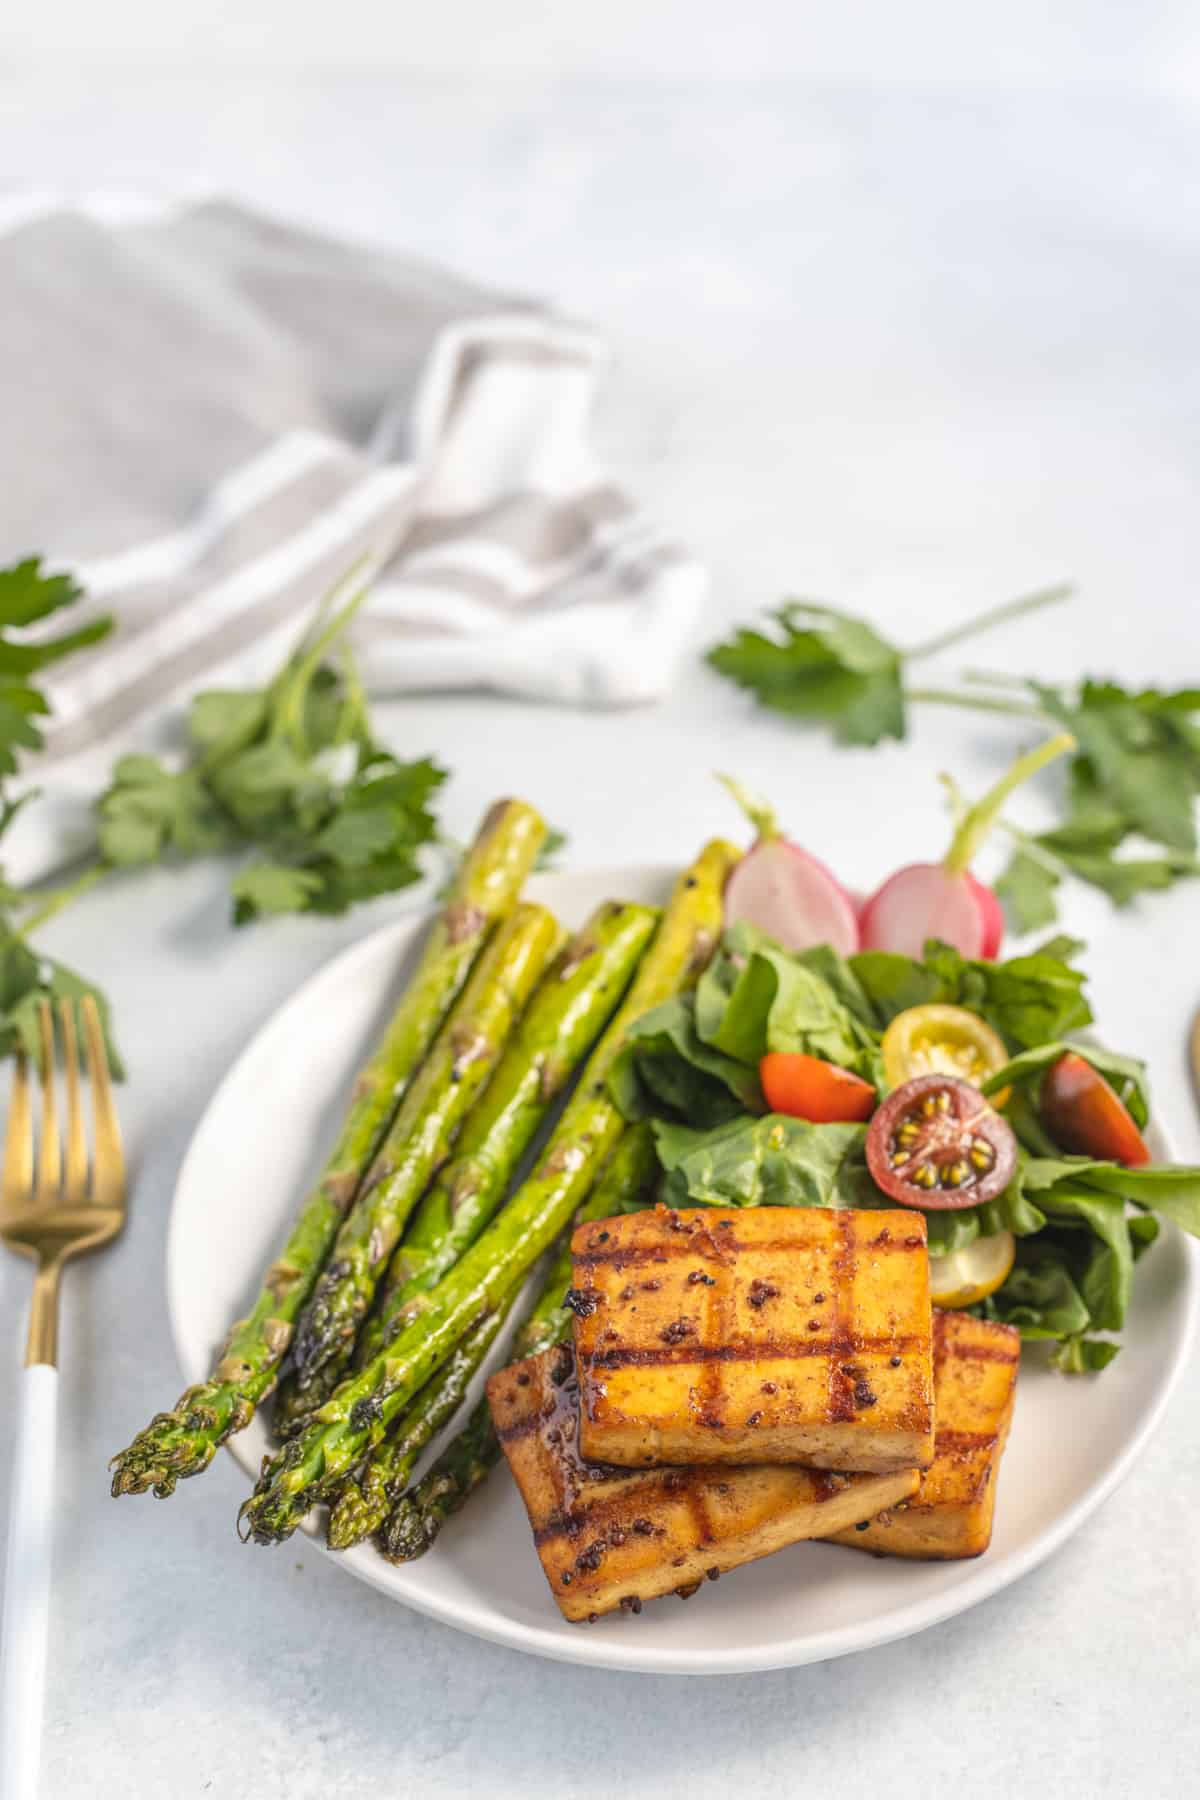 Cooked tofu  on a white plate with asparagus and salad